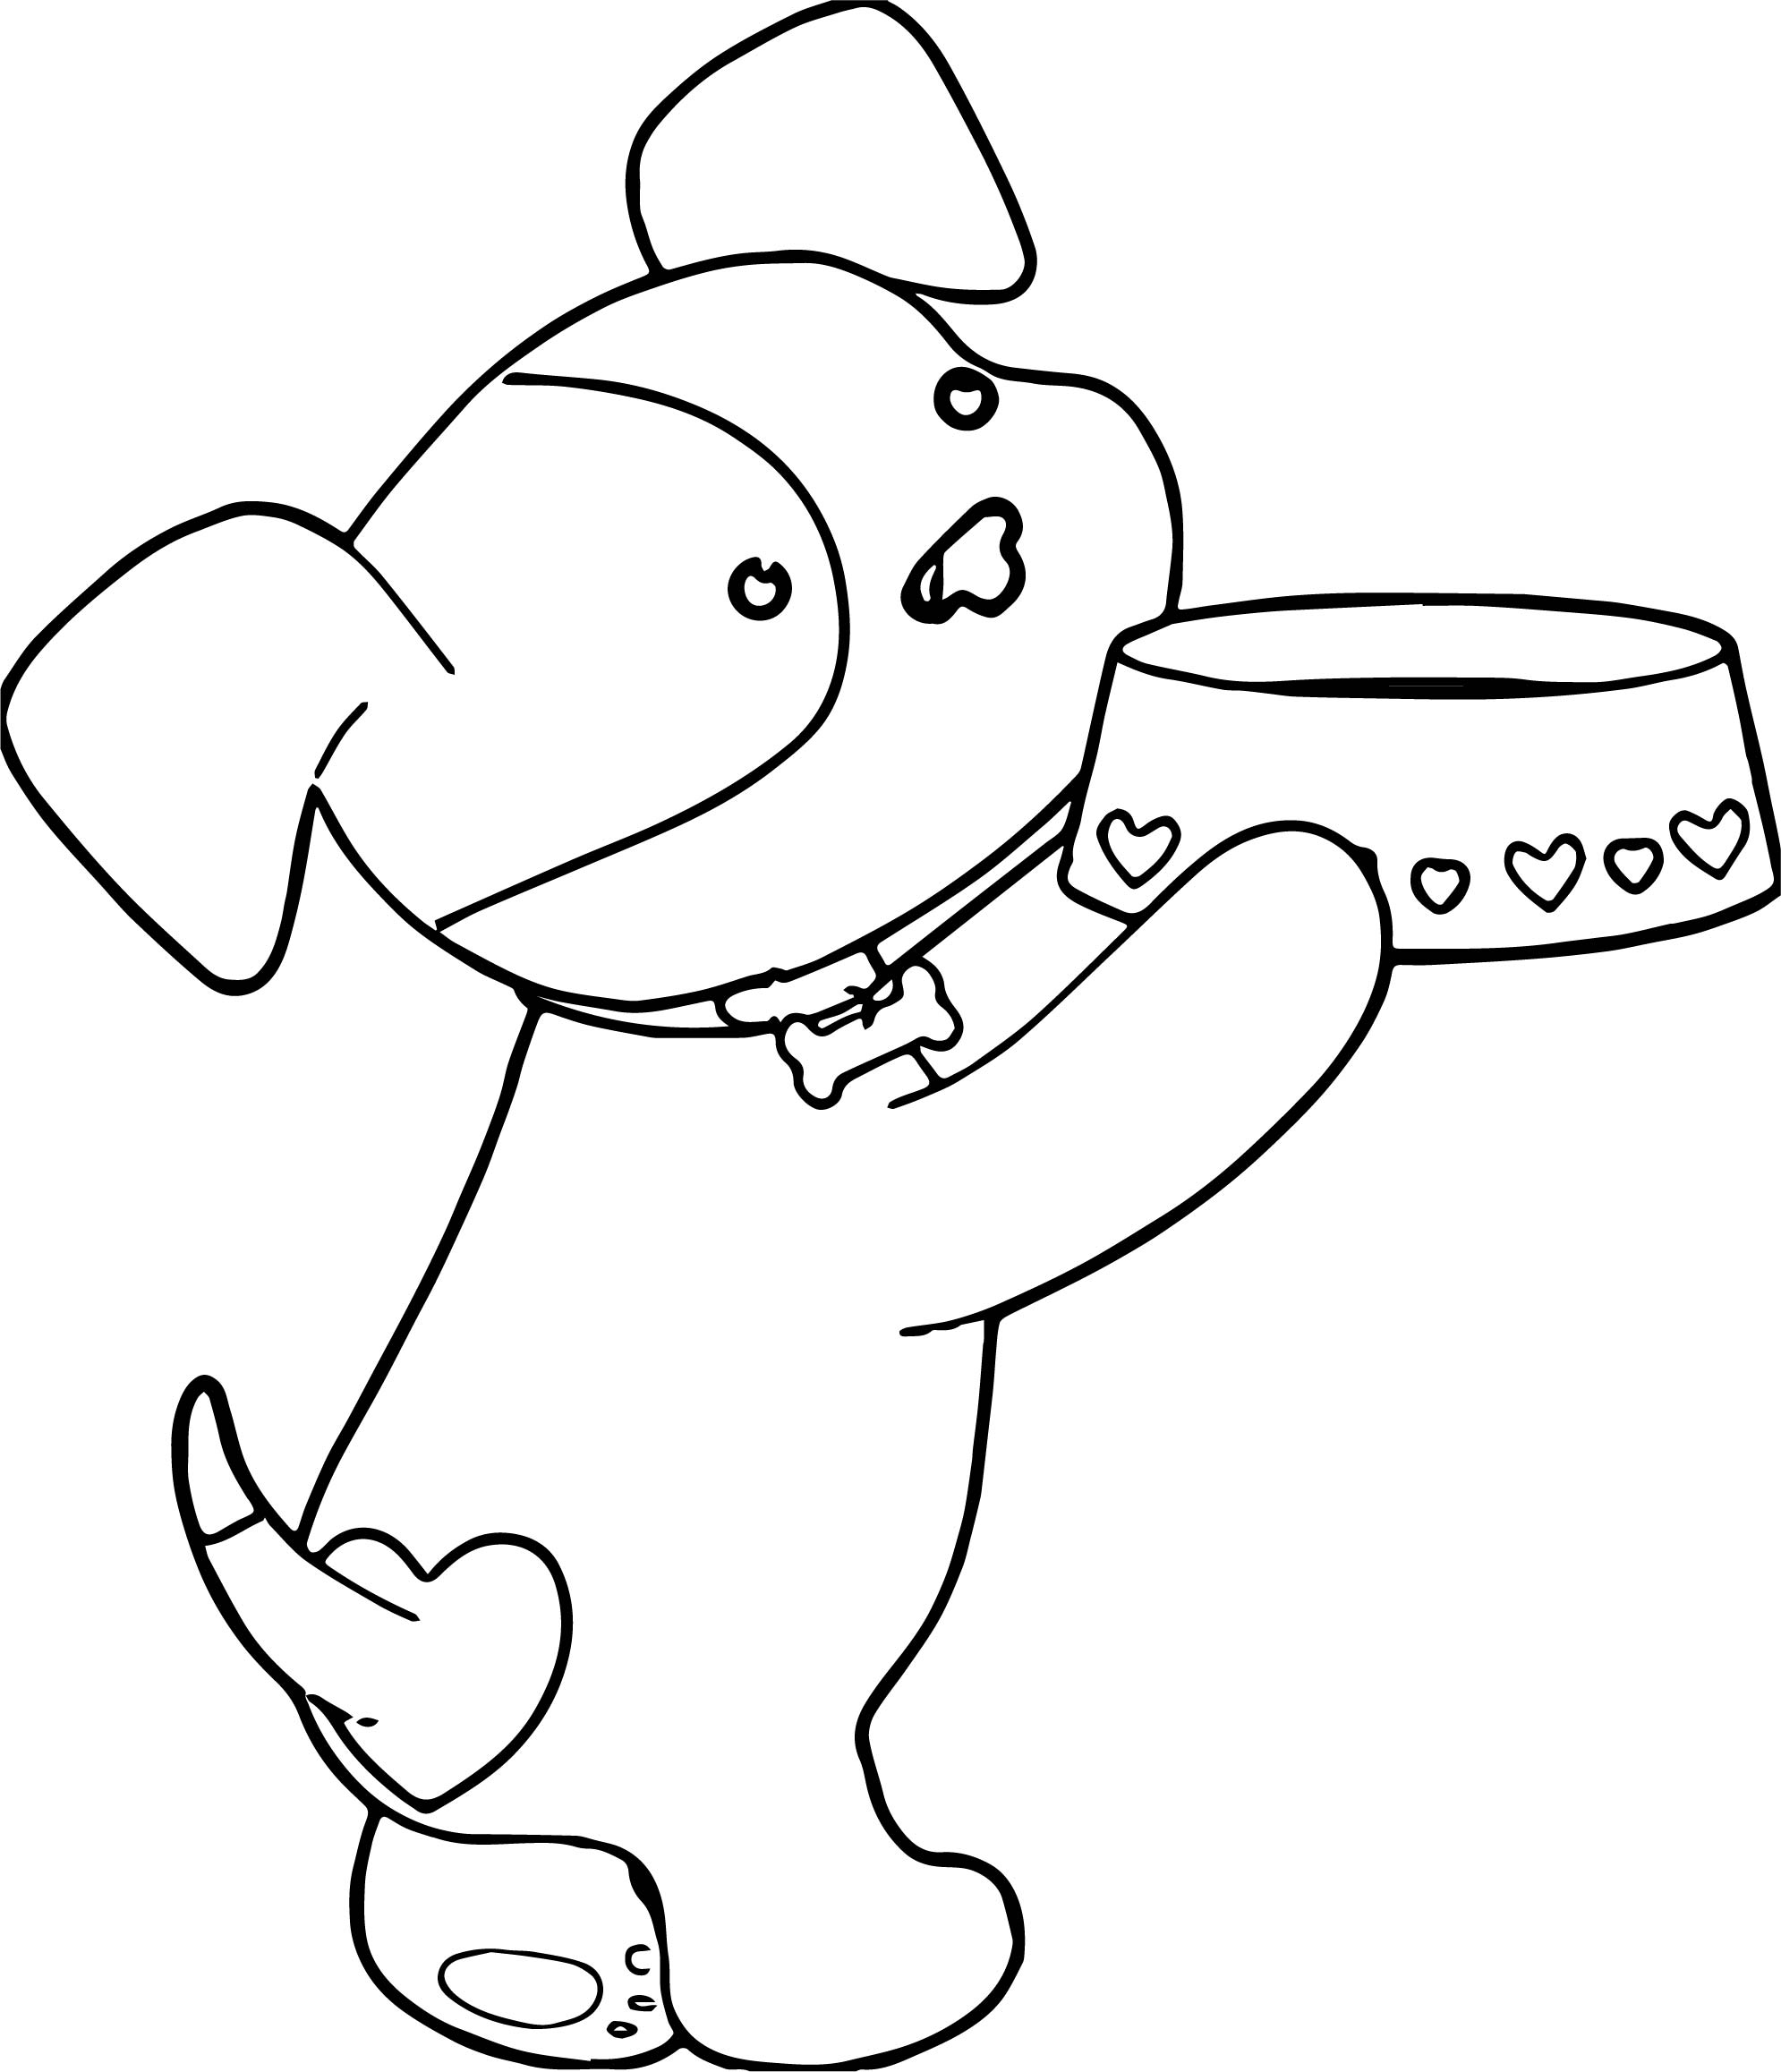 Puppy Dog Heart Food Please Coloring Page